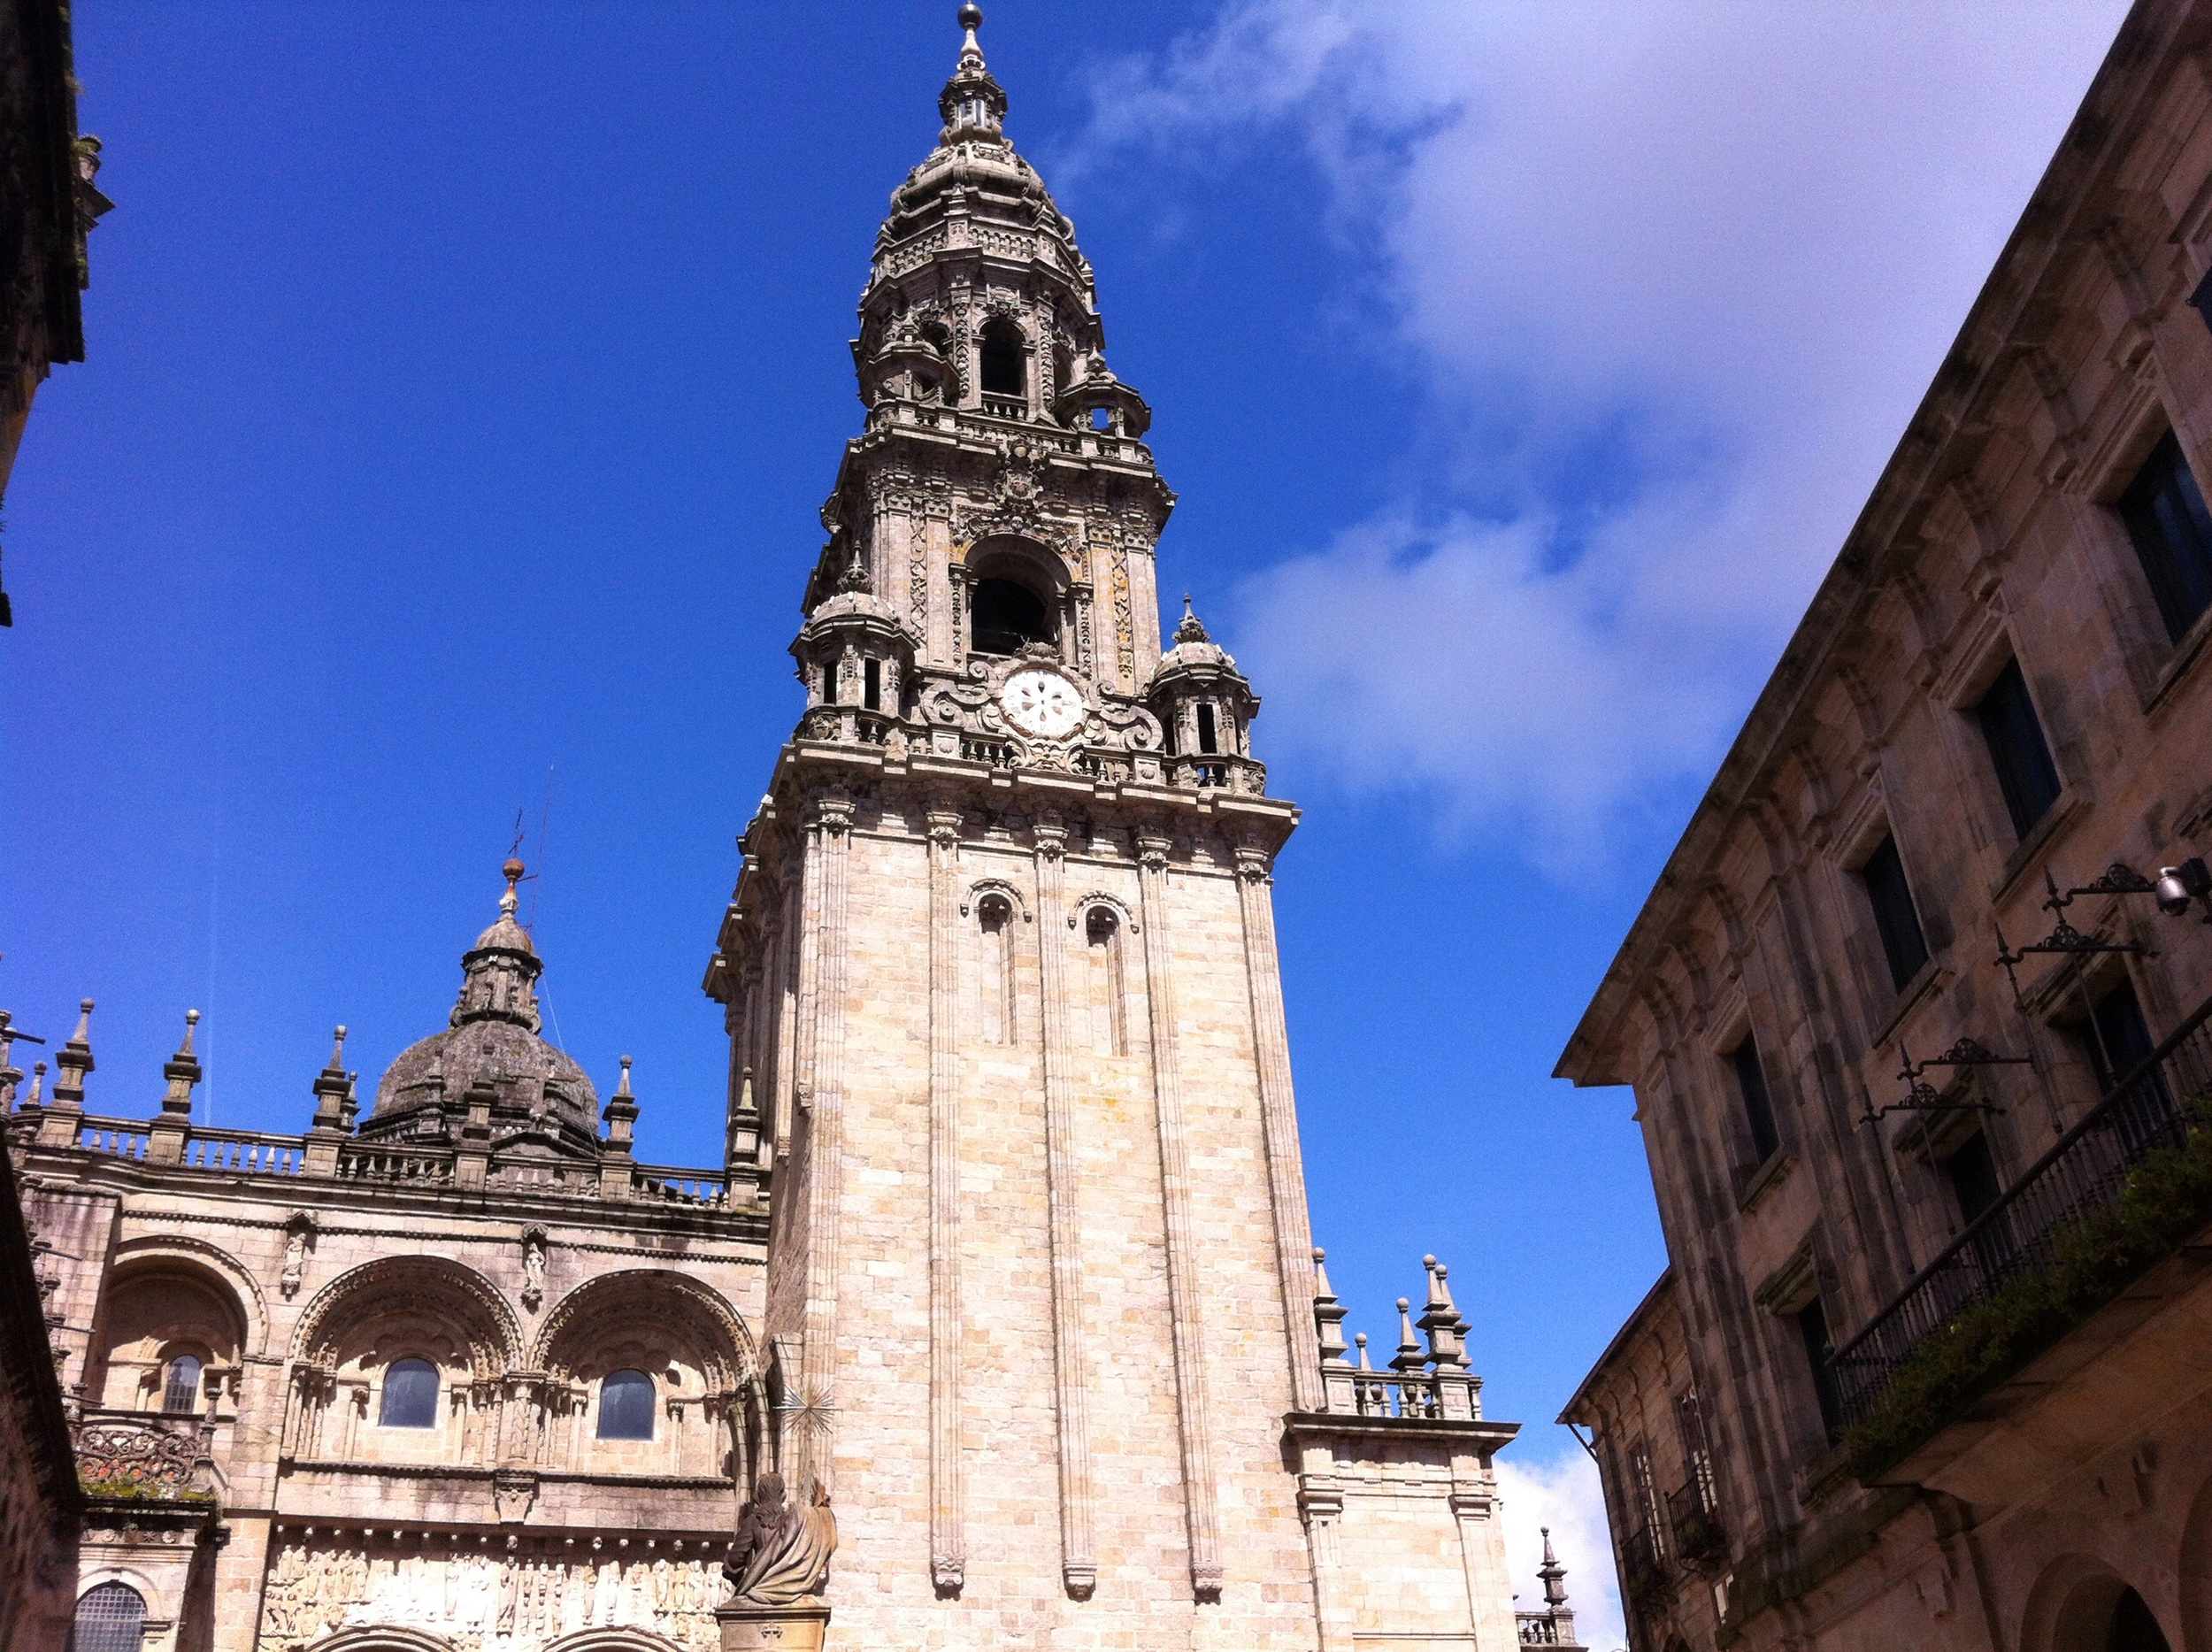 The cathedral in Santiago